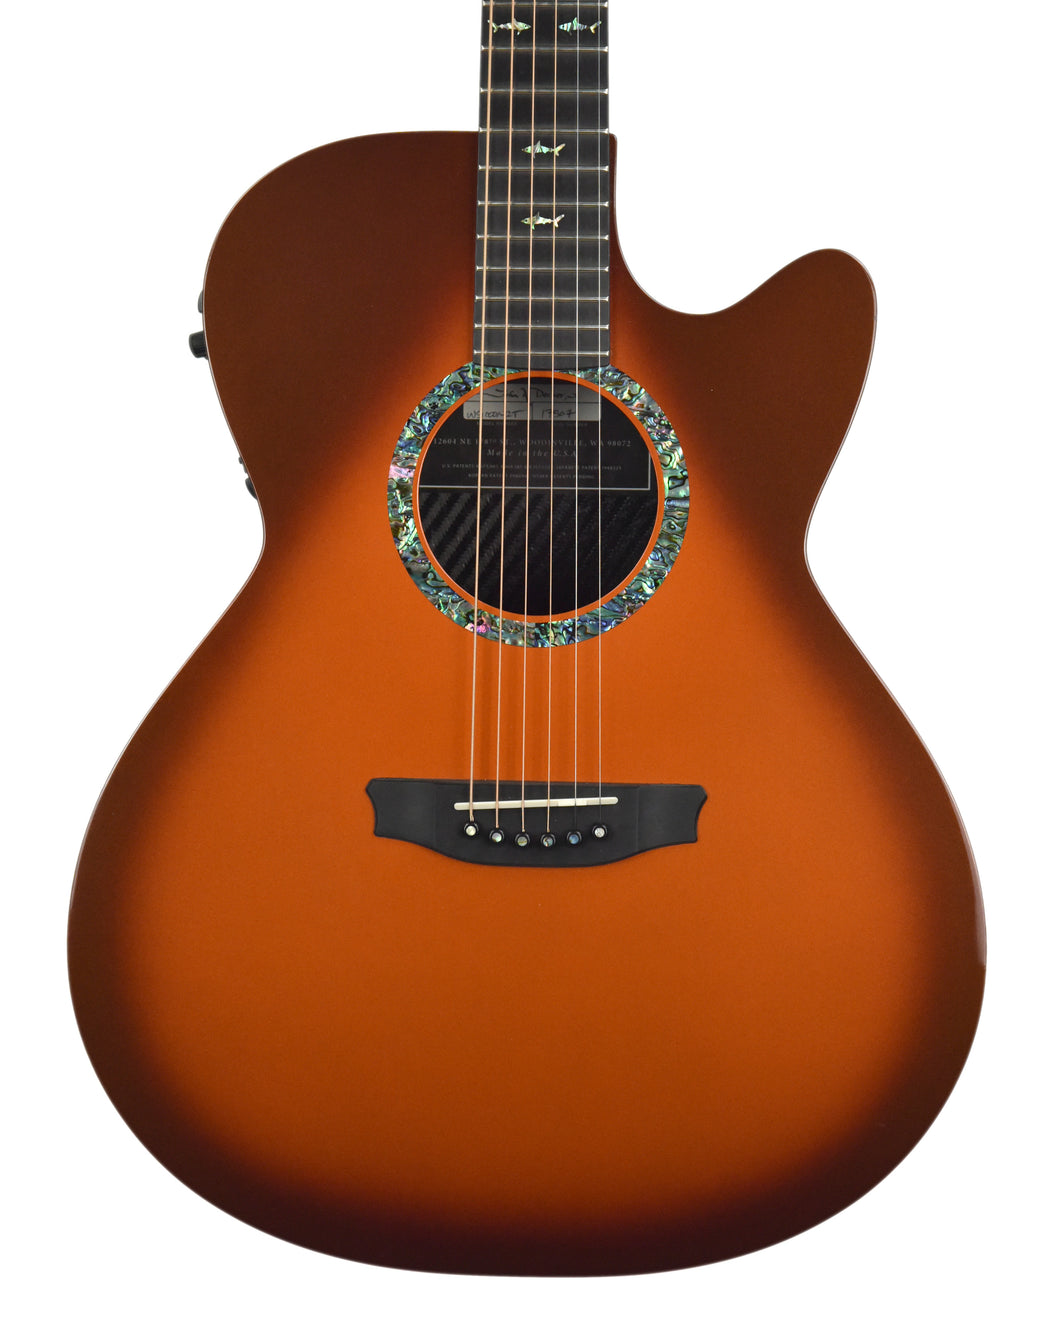 Used Rainsong WS1000N2T in Copperburst w/OHSC 17507 - The Music Gallery